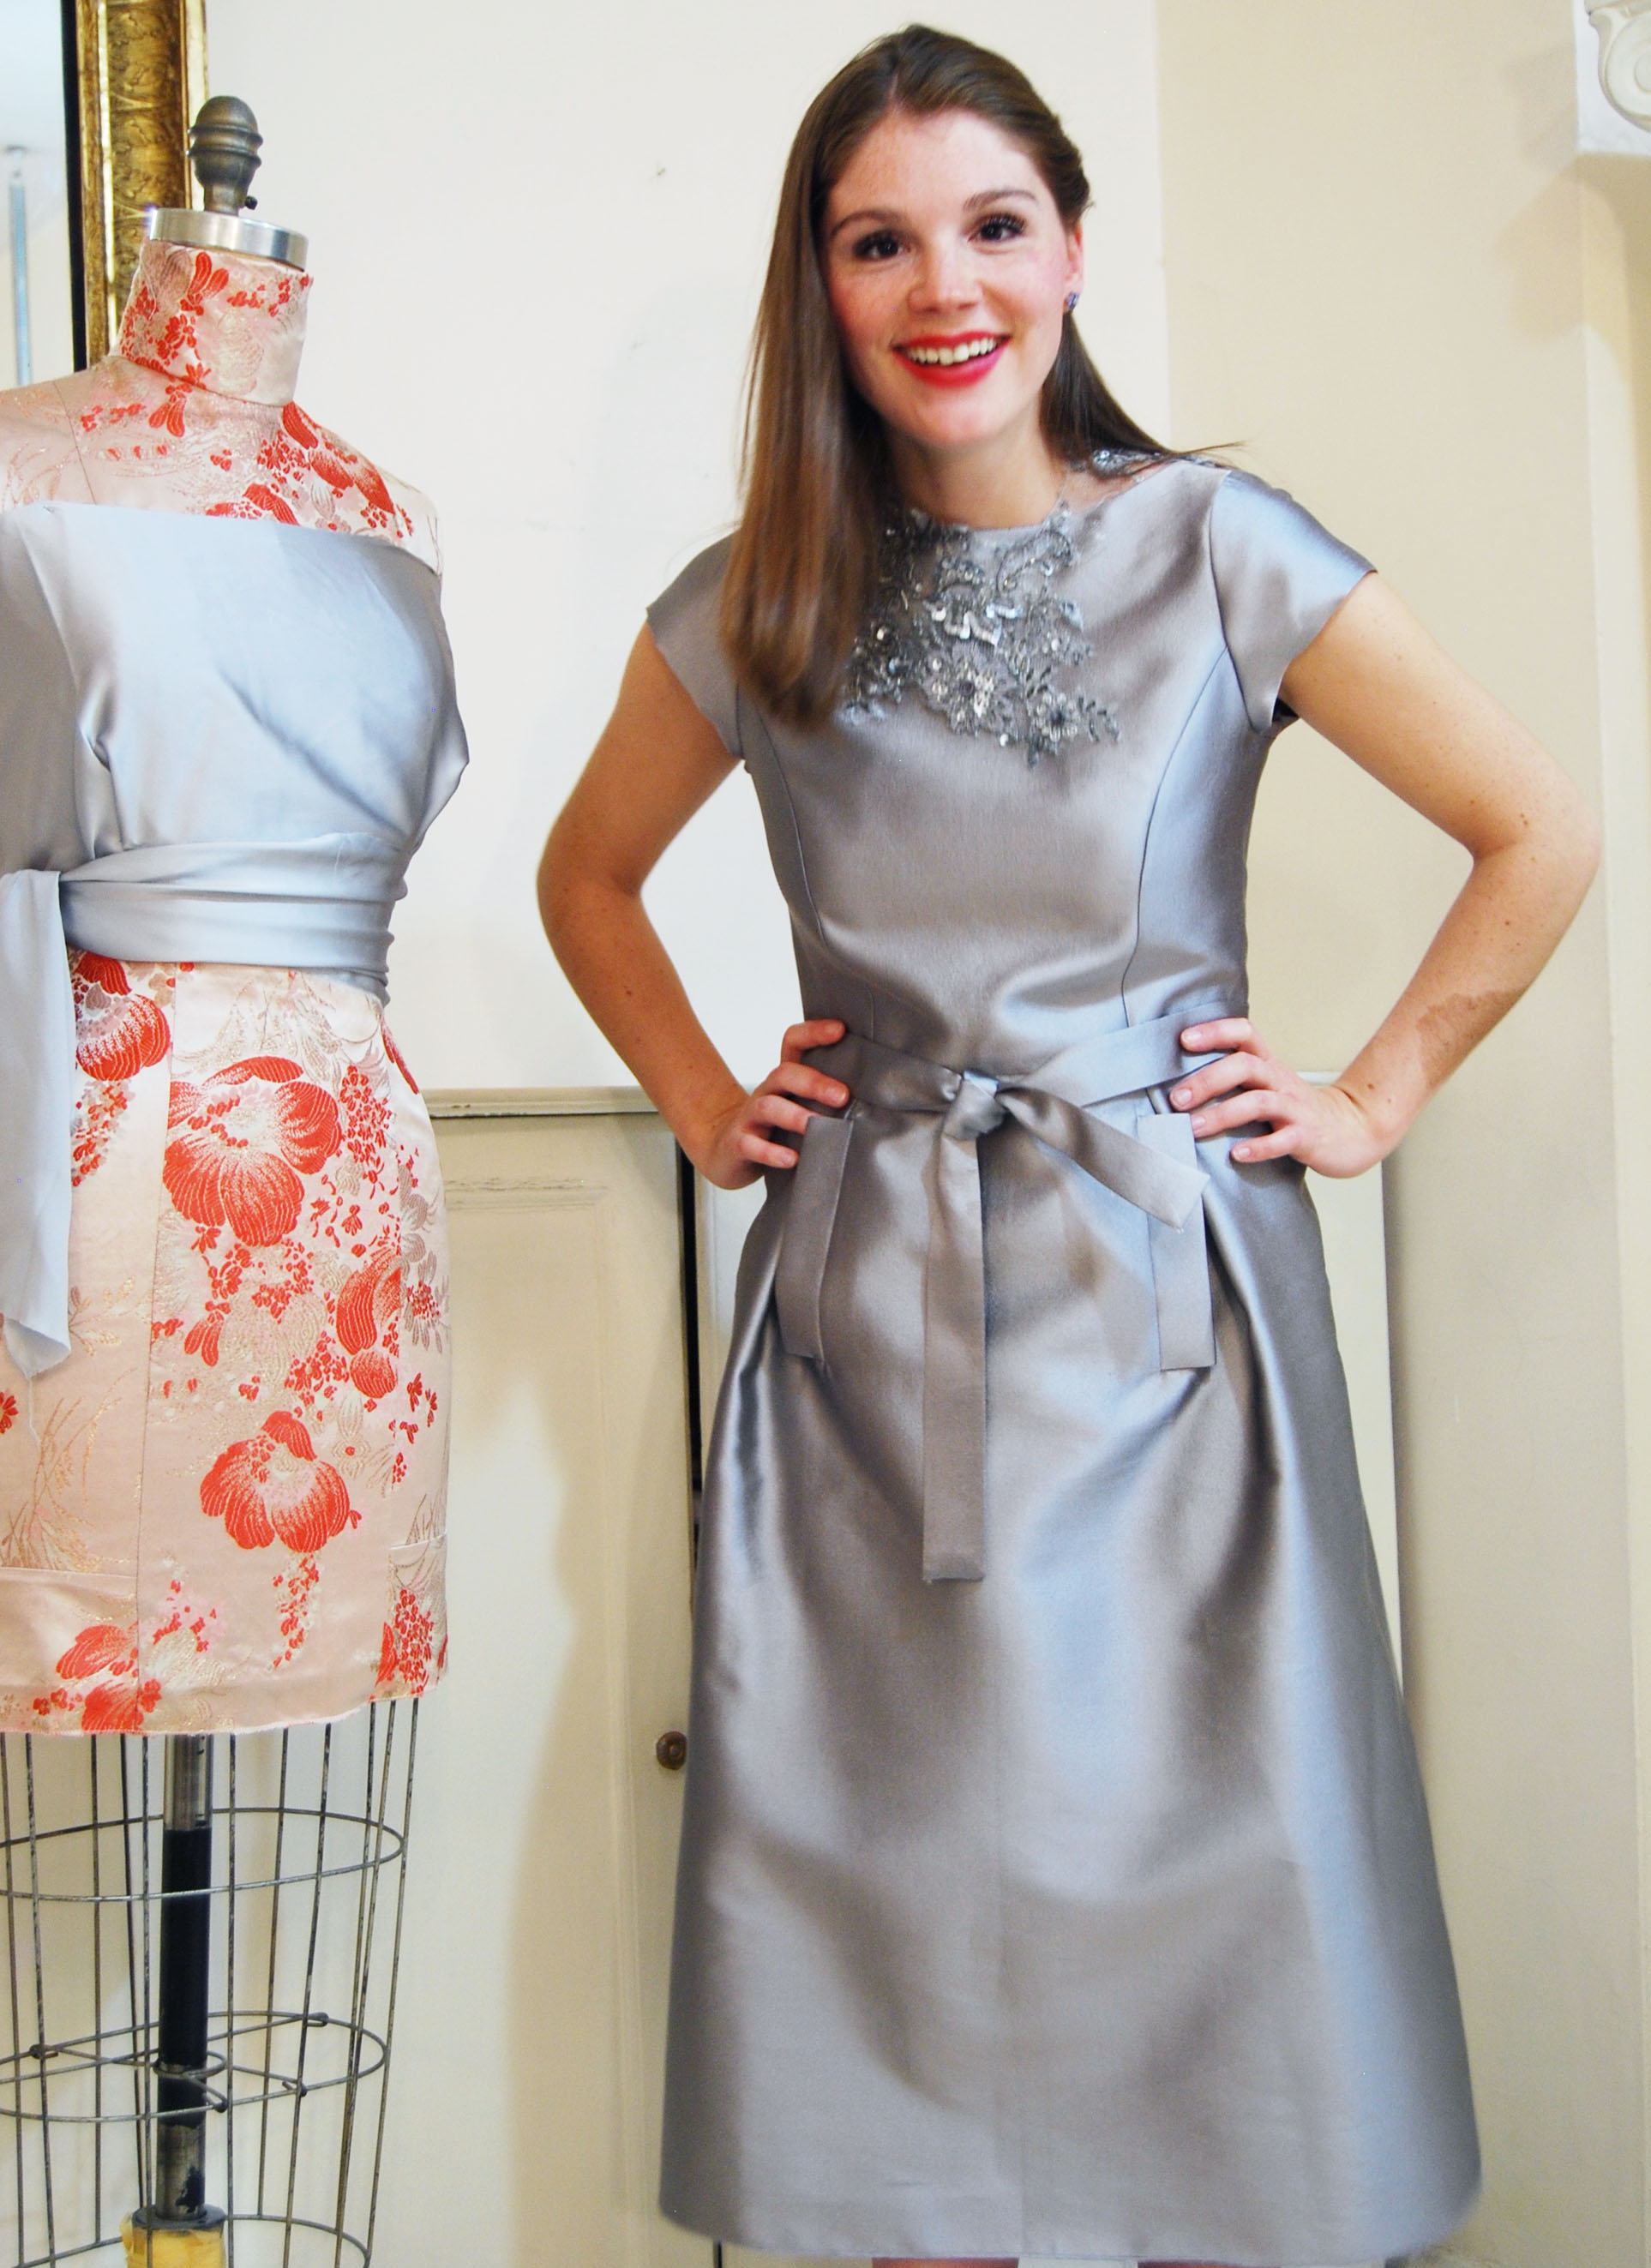 Silver silk/wool blend. with pockets and tie belt. Lace necklace is separate from the dress.